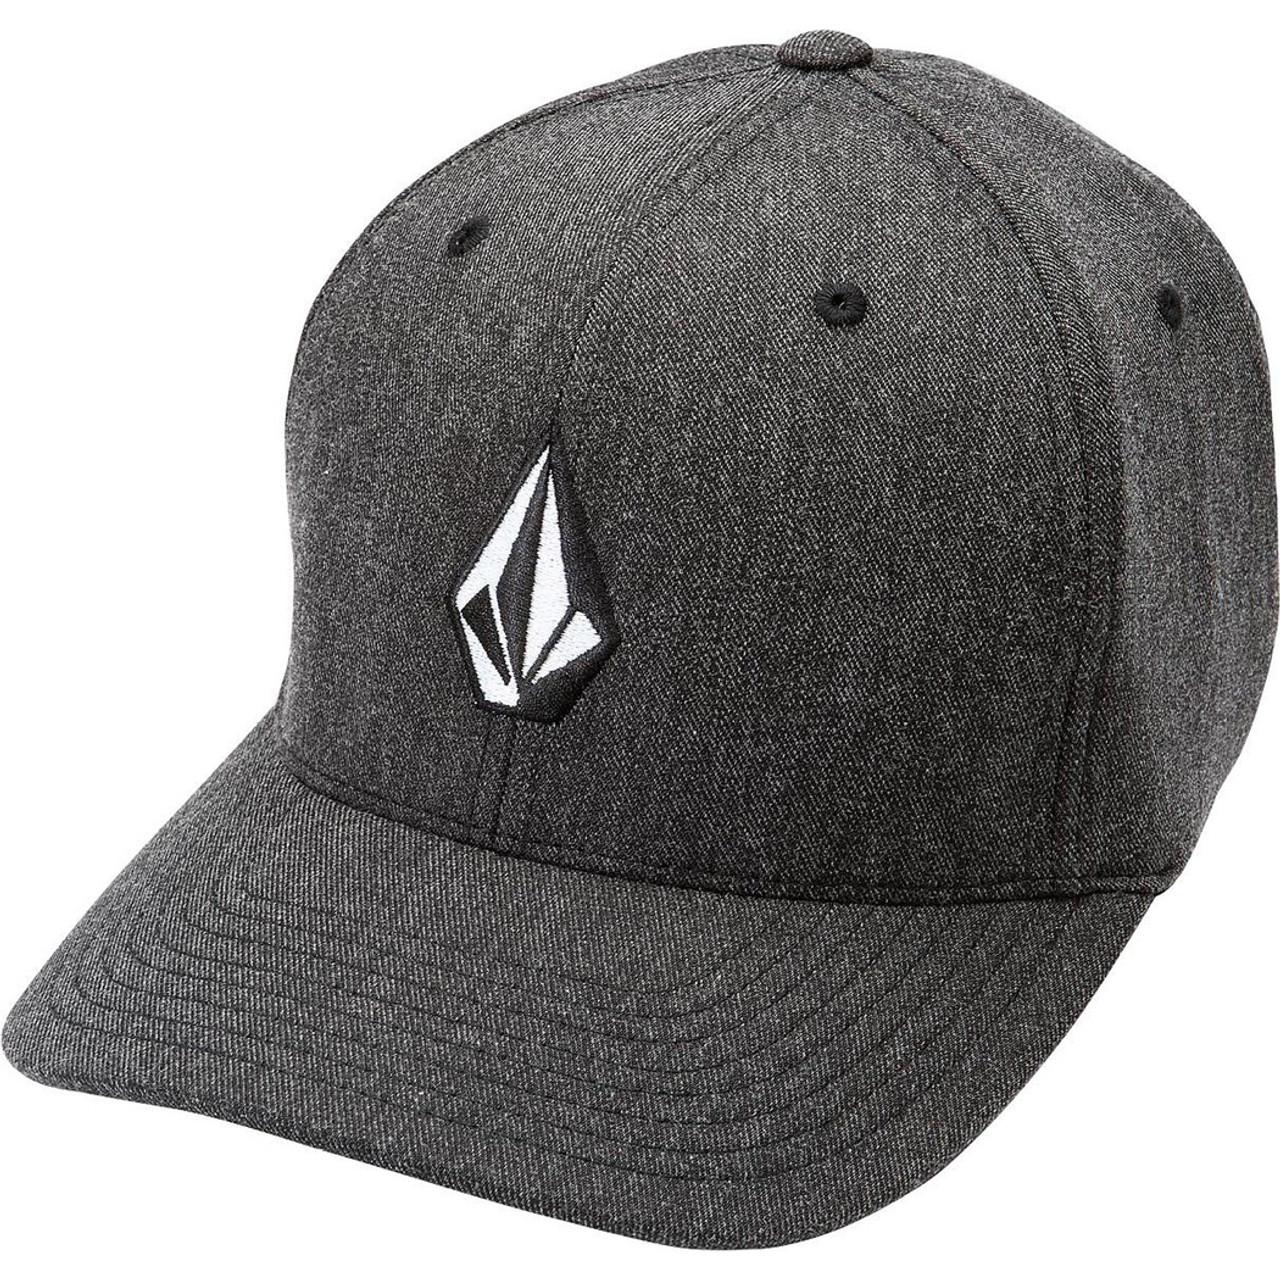 60b9e05b Volcom Hat - Full Stone Heather - Charcoal Heather - Surf and Dirt